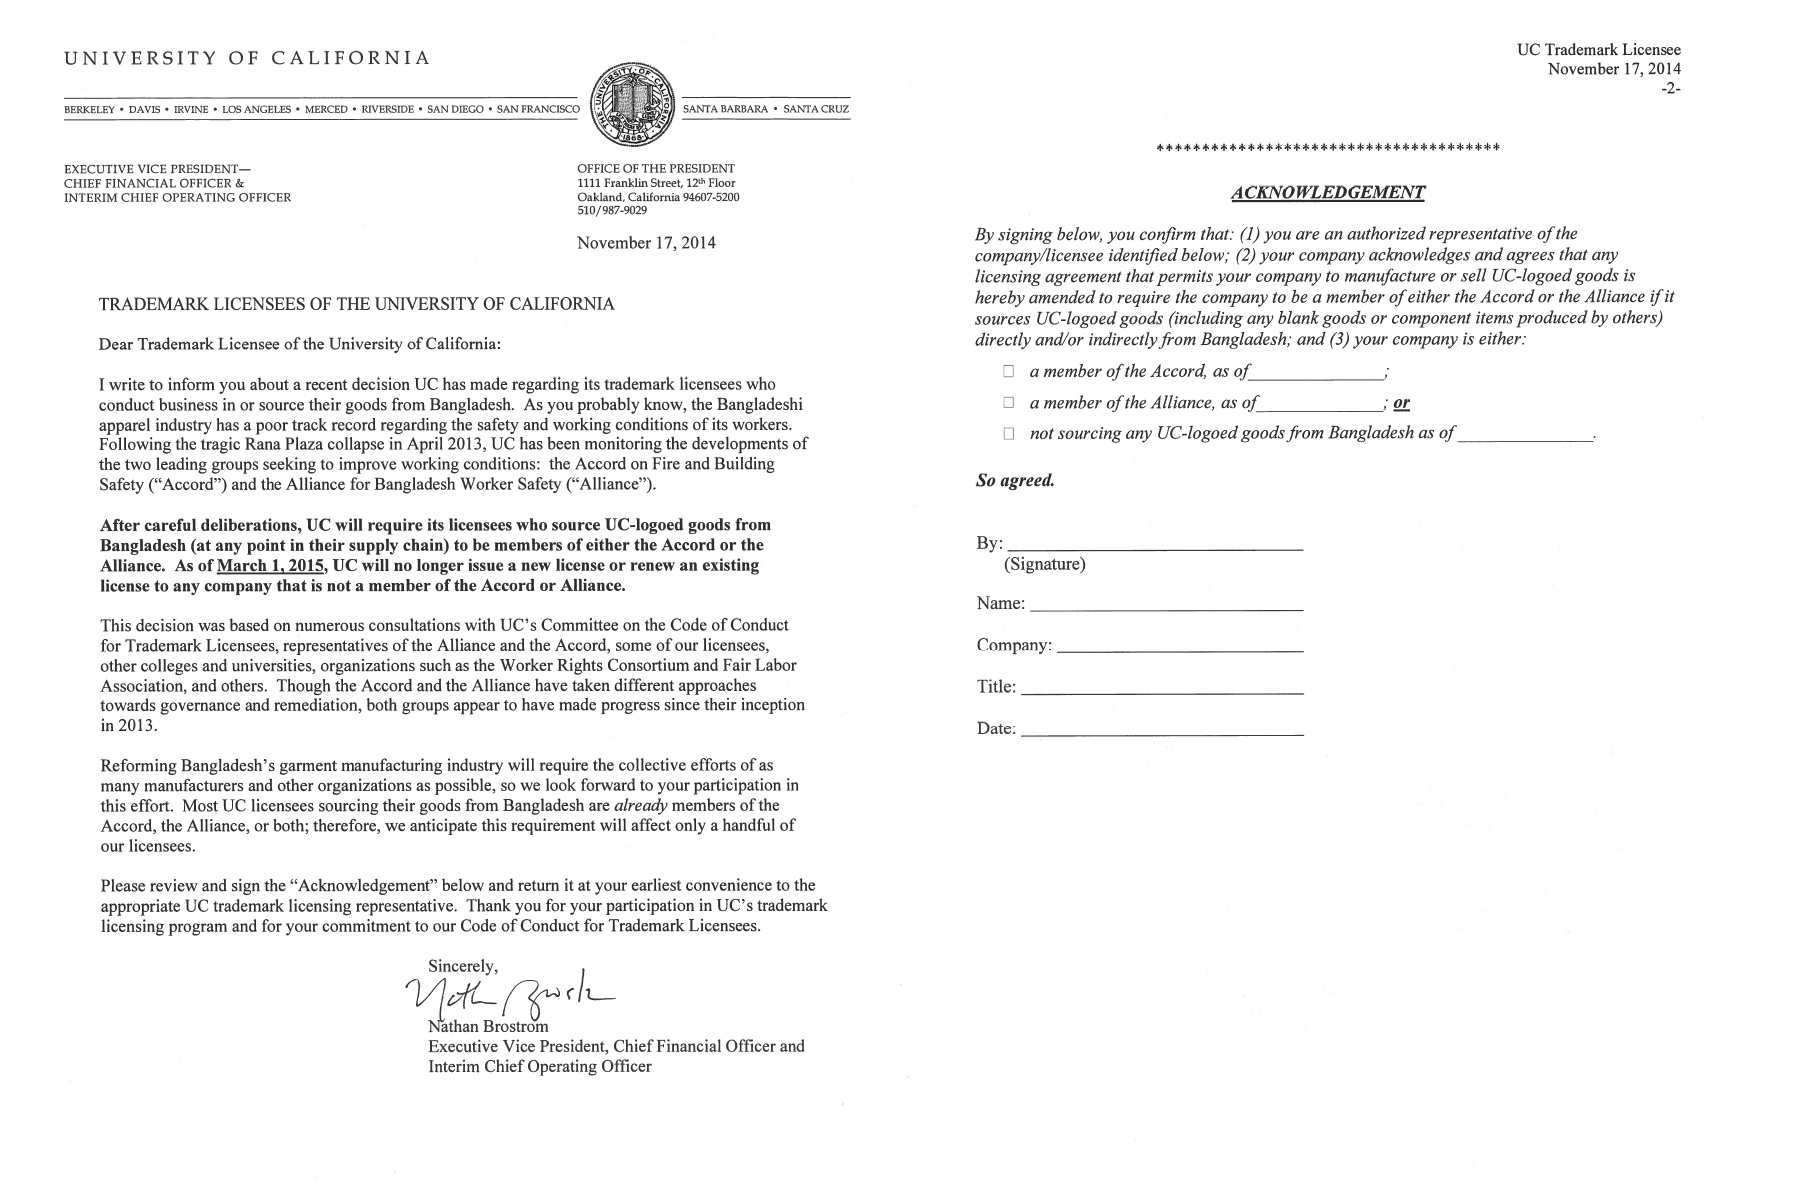 The notice issued on November 17th, 2014 by the UC Office of the President (left), which stipulates that trademark licensees could sign on to either the Accord or the Alliance, included an attachment (right) where licensees would indicate their affiliation with either or.